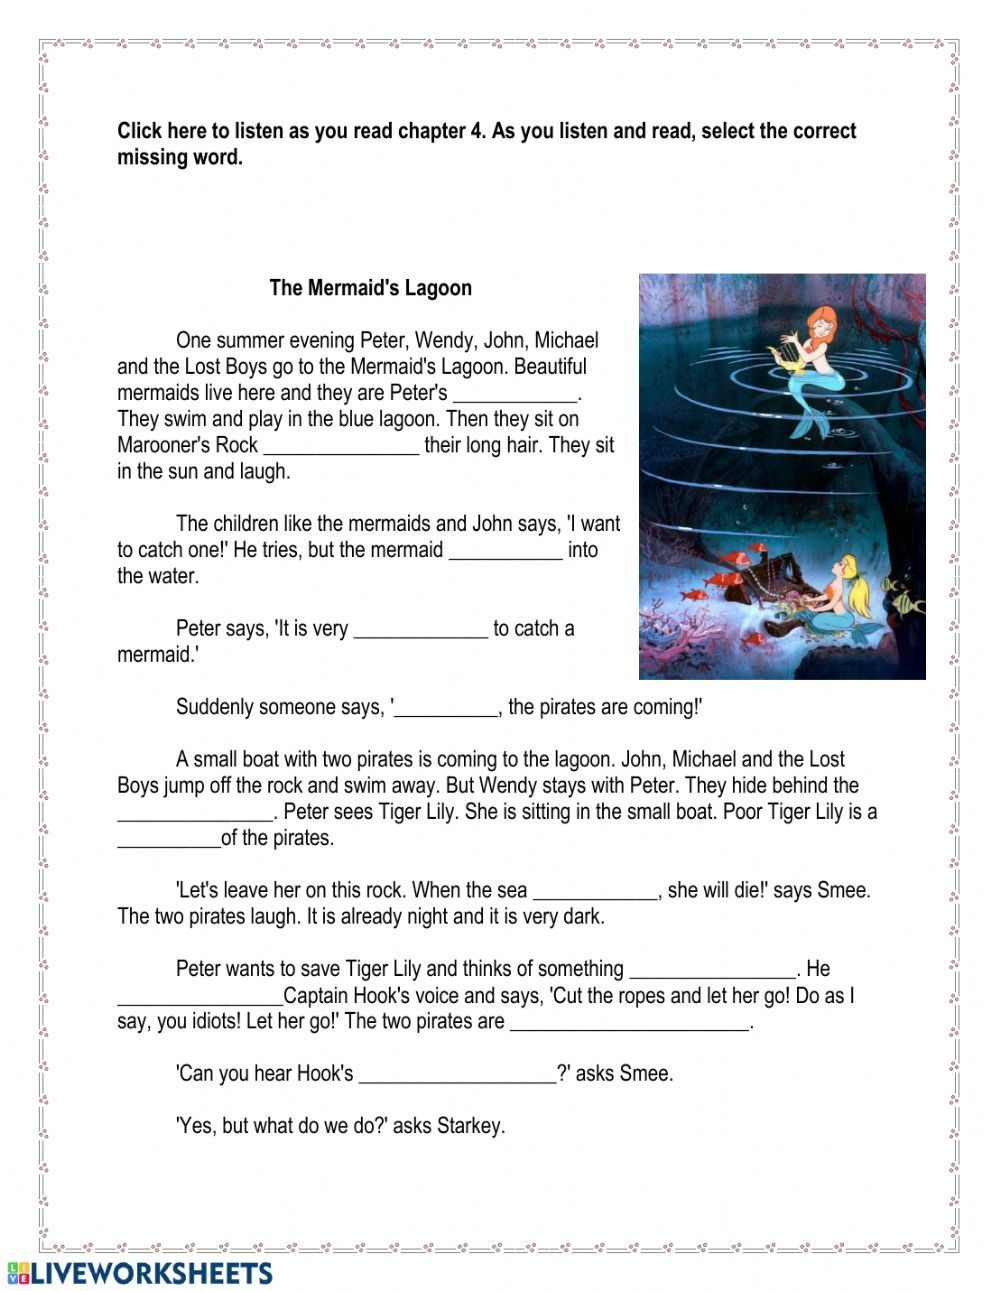 Reading Comprehension Online Worksheet For Grade 5 You Can Do The Exercises Online Or Download The In 2021 Reading Comprehension Esl Vocabulary Vocabulary In Context [ 1291 x 1000 Pixel ]